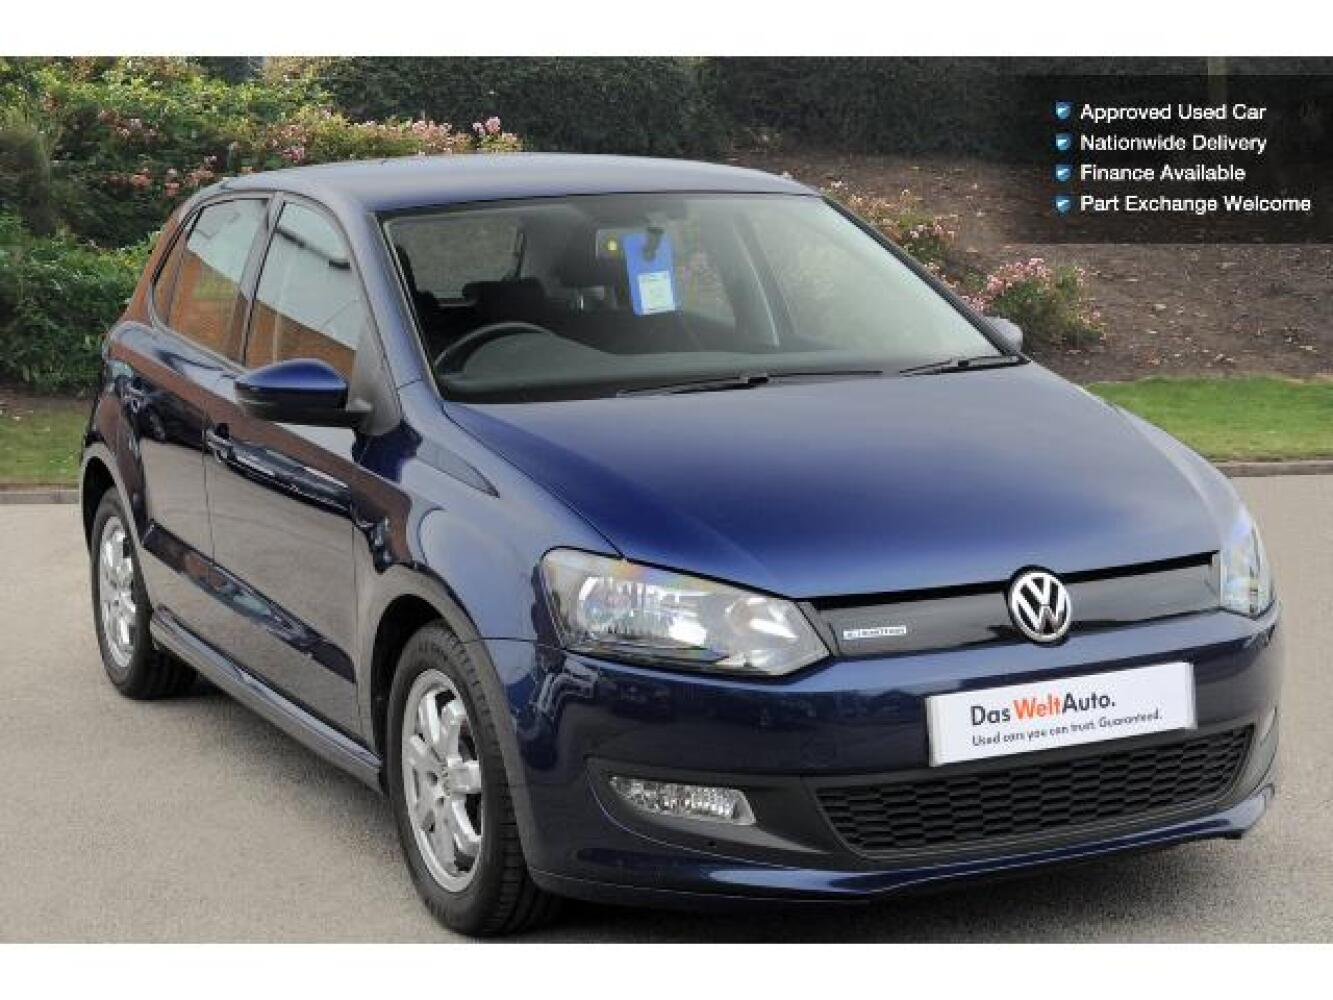 used volkswagen polo 1 2 tdi bluemotion 5dr diesel hatchback for sale newcastle infiniti. Black Bedroom Furniture Sets. Home Design Ideas